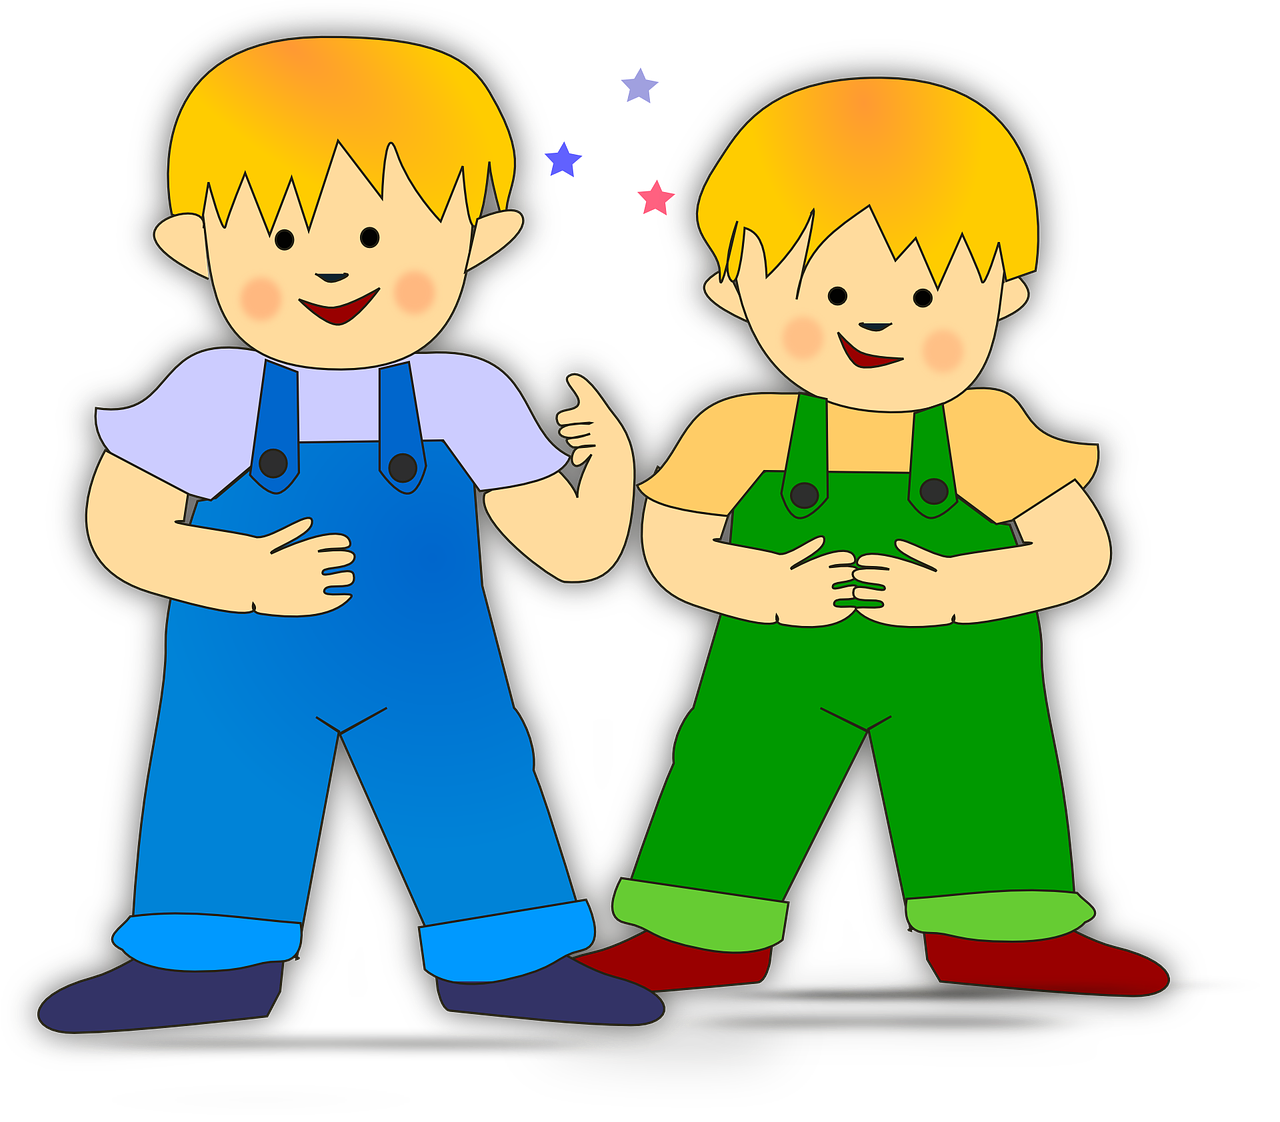 Transparent clipart for 2 children picture freeuse download Boys Brothers Kids Two Children PNG - Picpng picture freeuse download